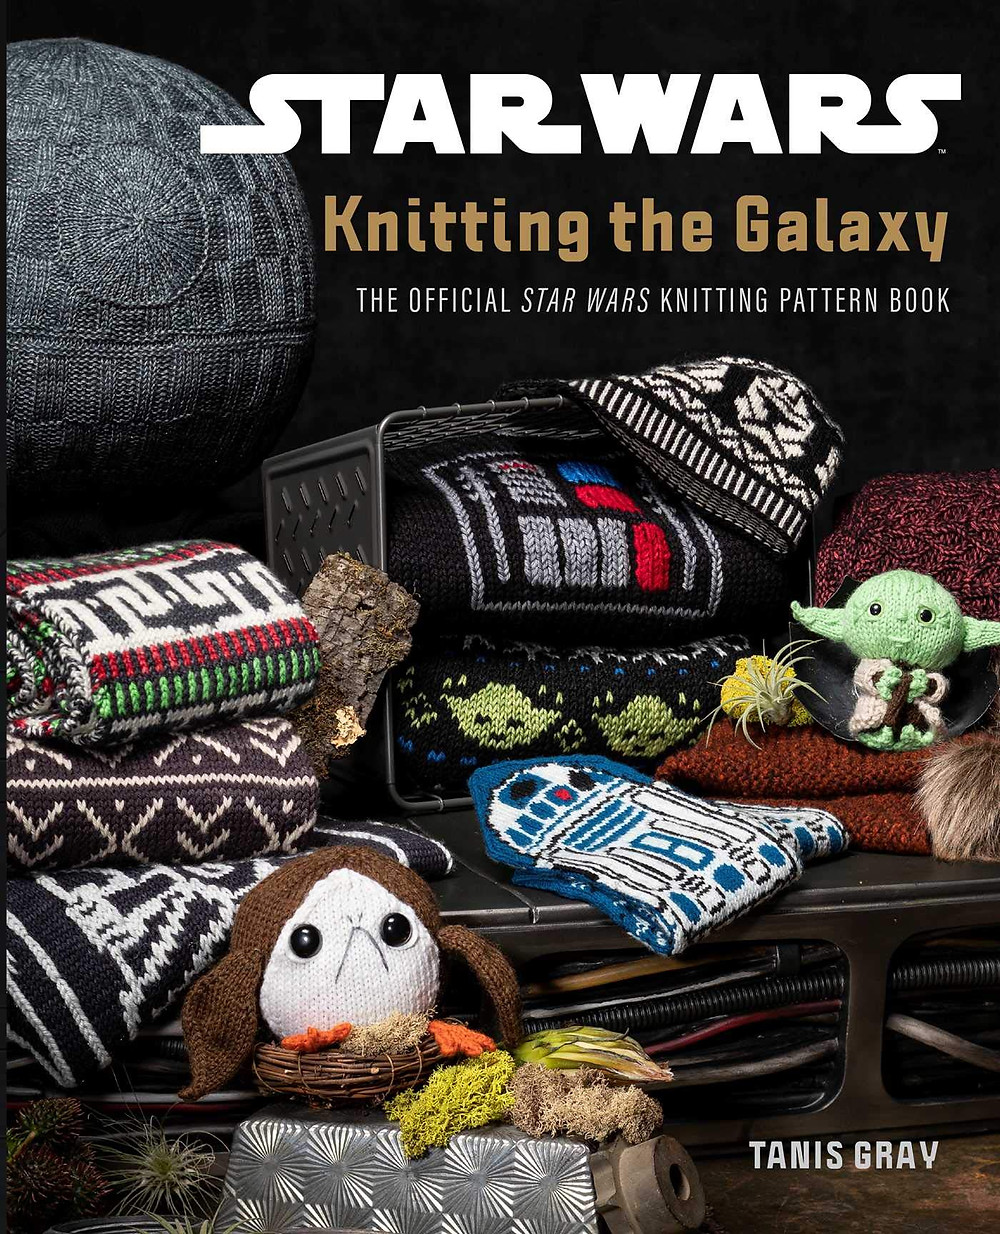 Star Wars: Knitting the Galaxy: The Official Star Wars Knitting Pattern Book by Tanis Gray